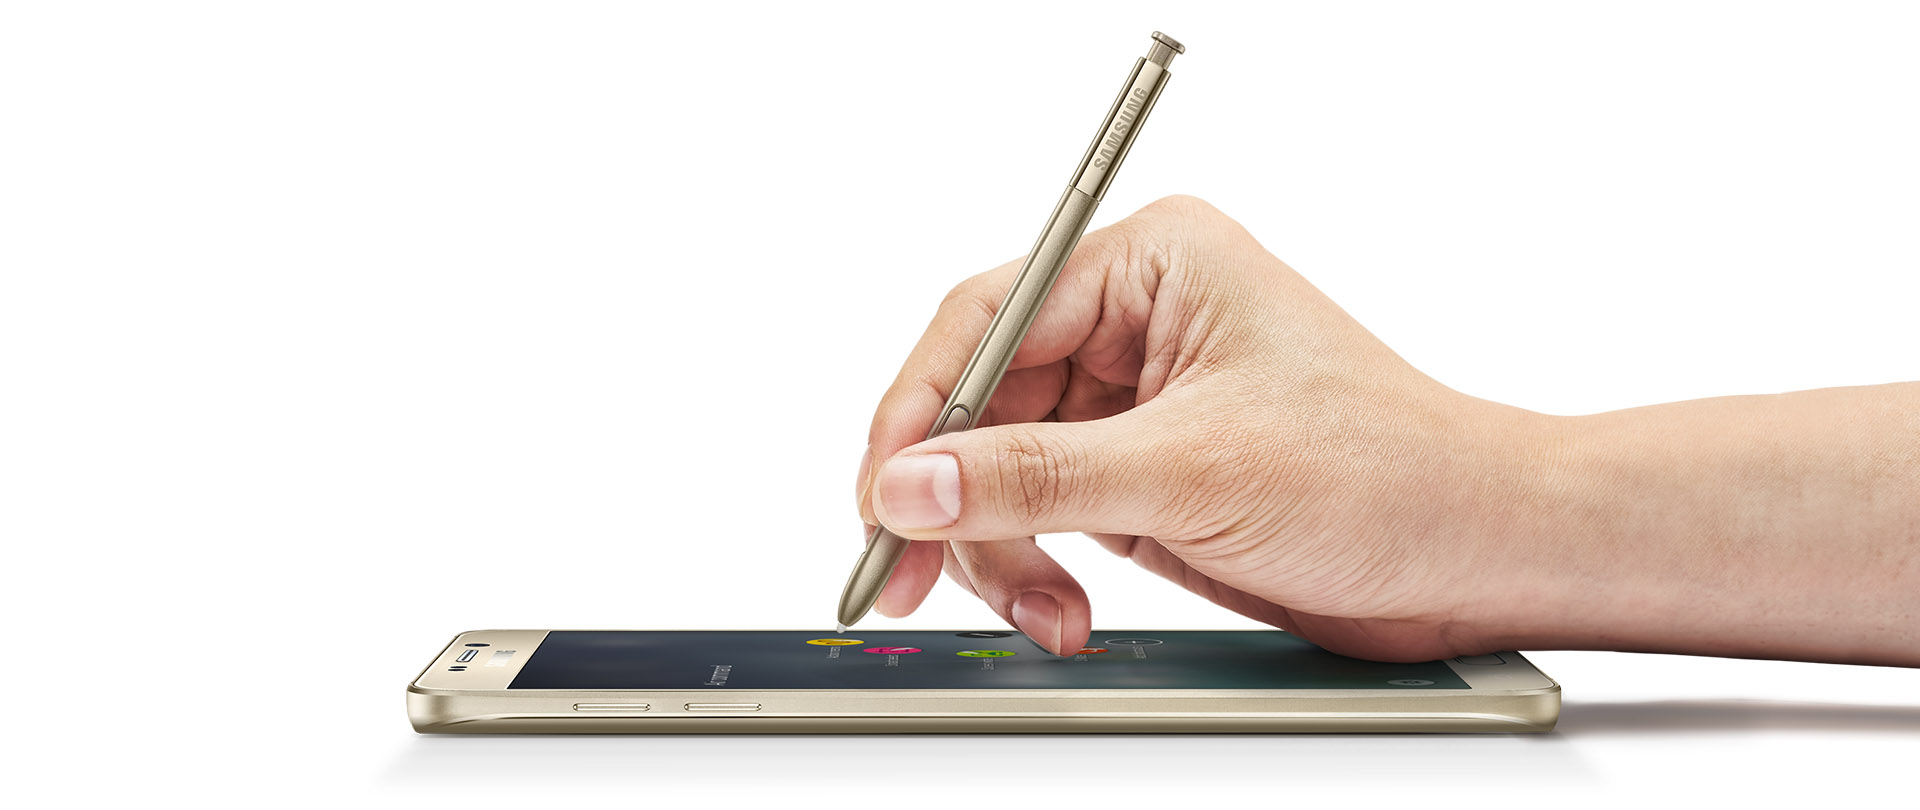 El Galaxy Note 5 con su inseparable S-Pen.